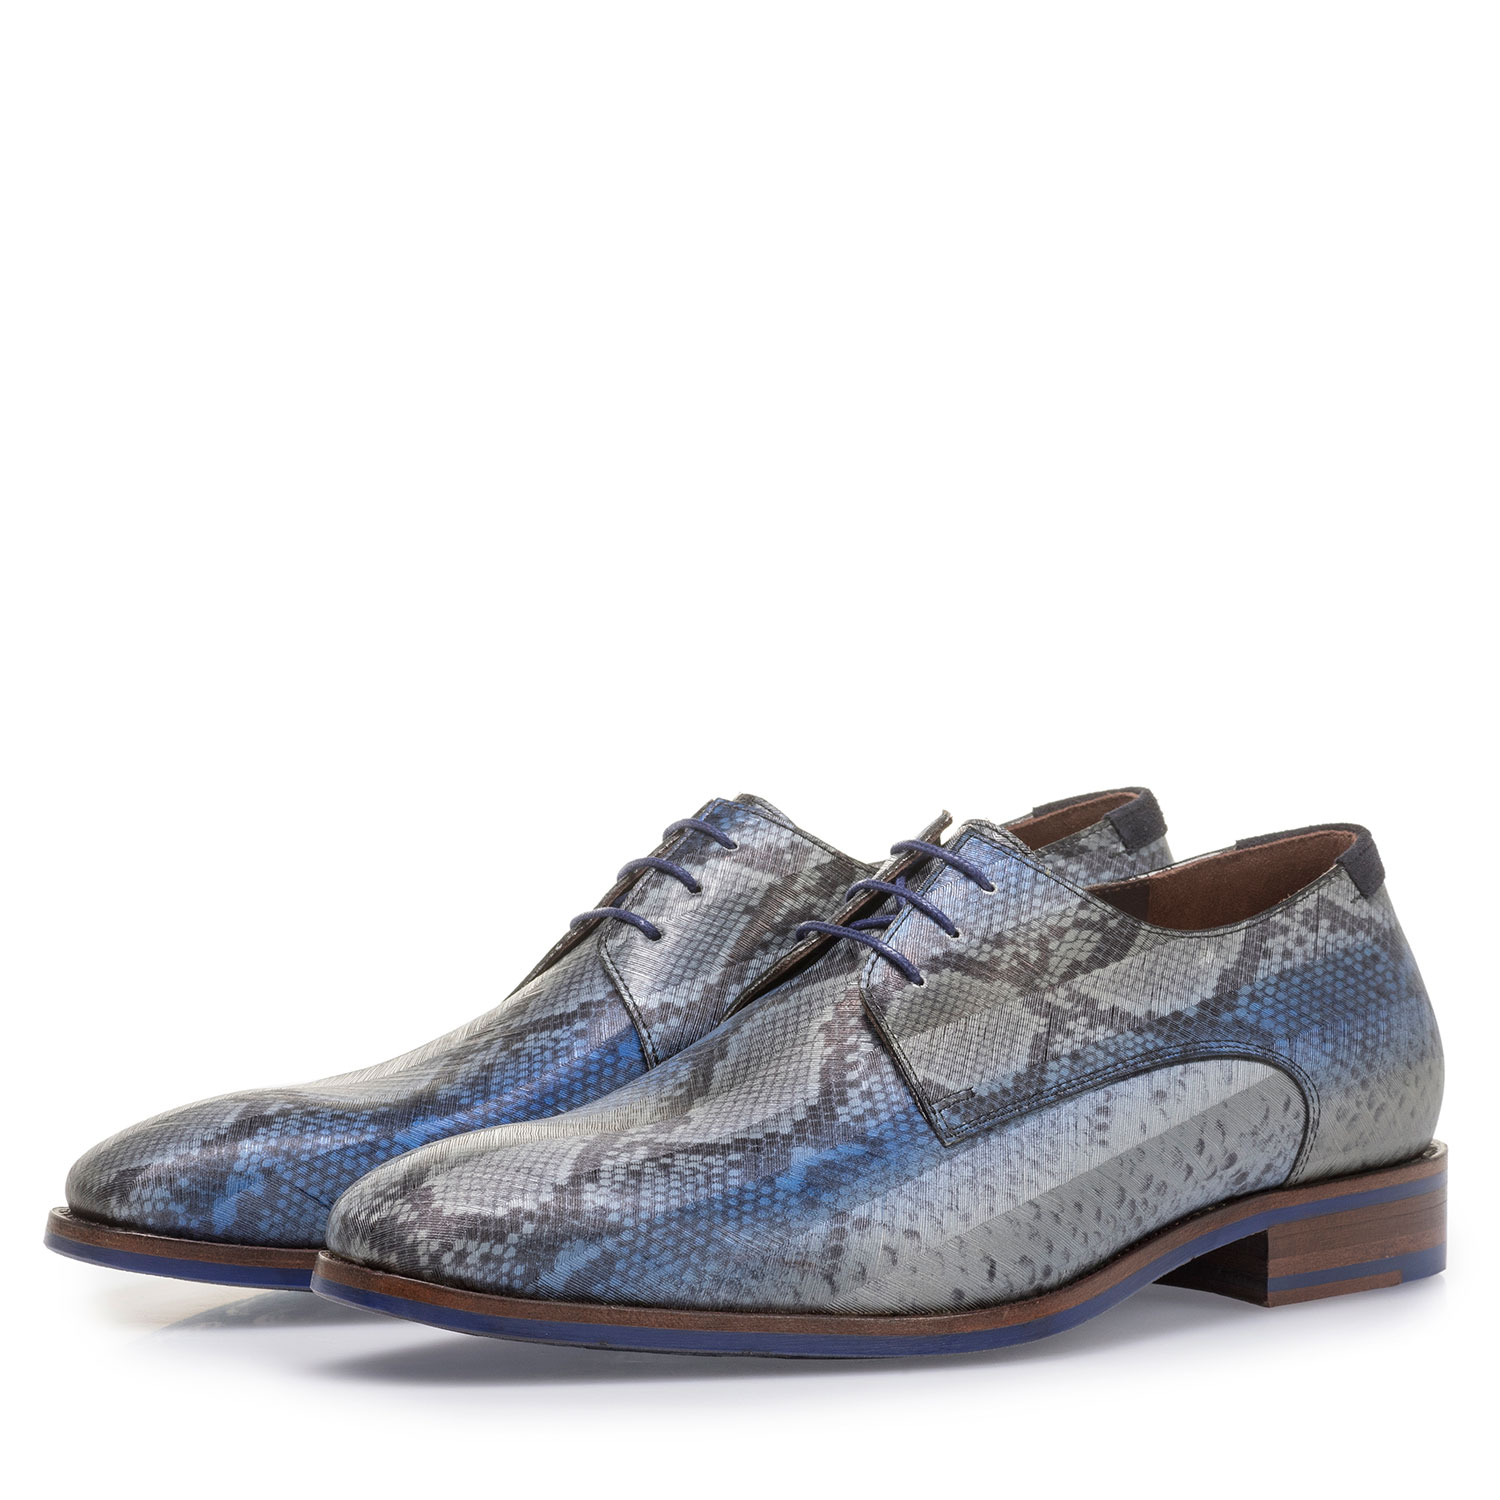 18297/00 - Blue lace shoe with snake print